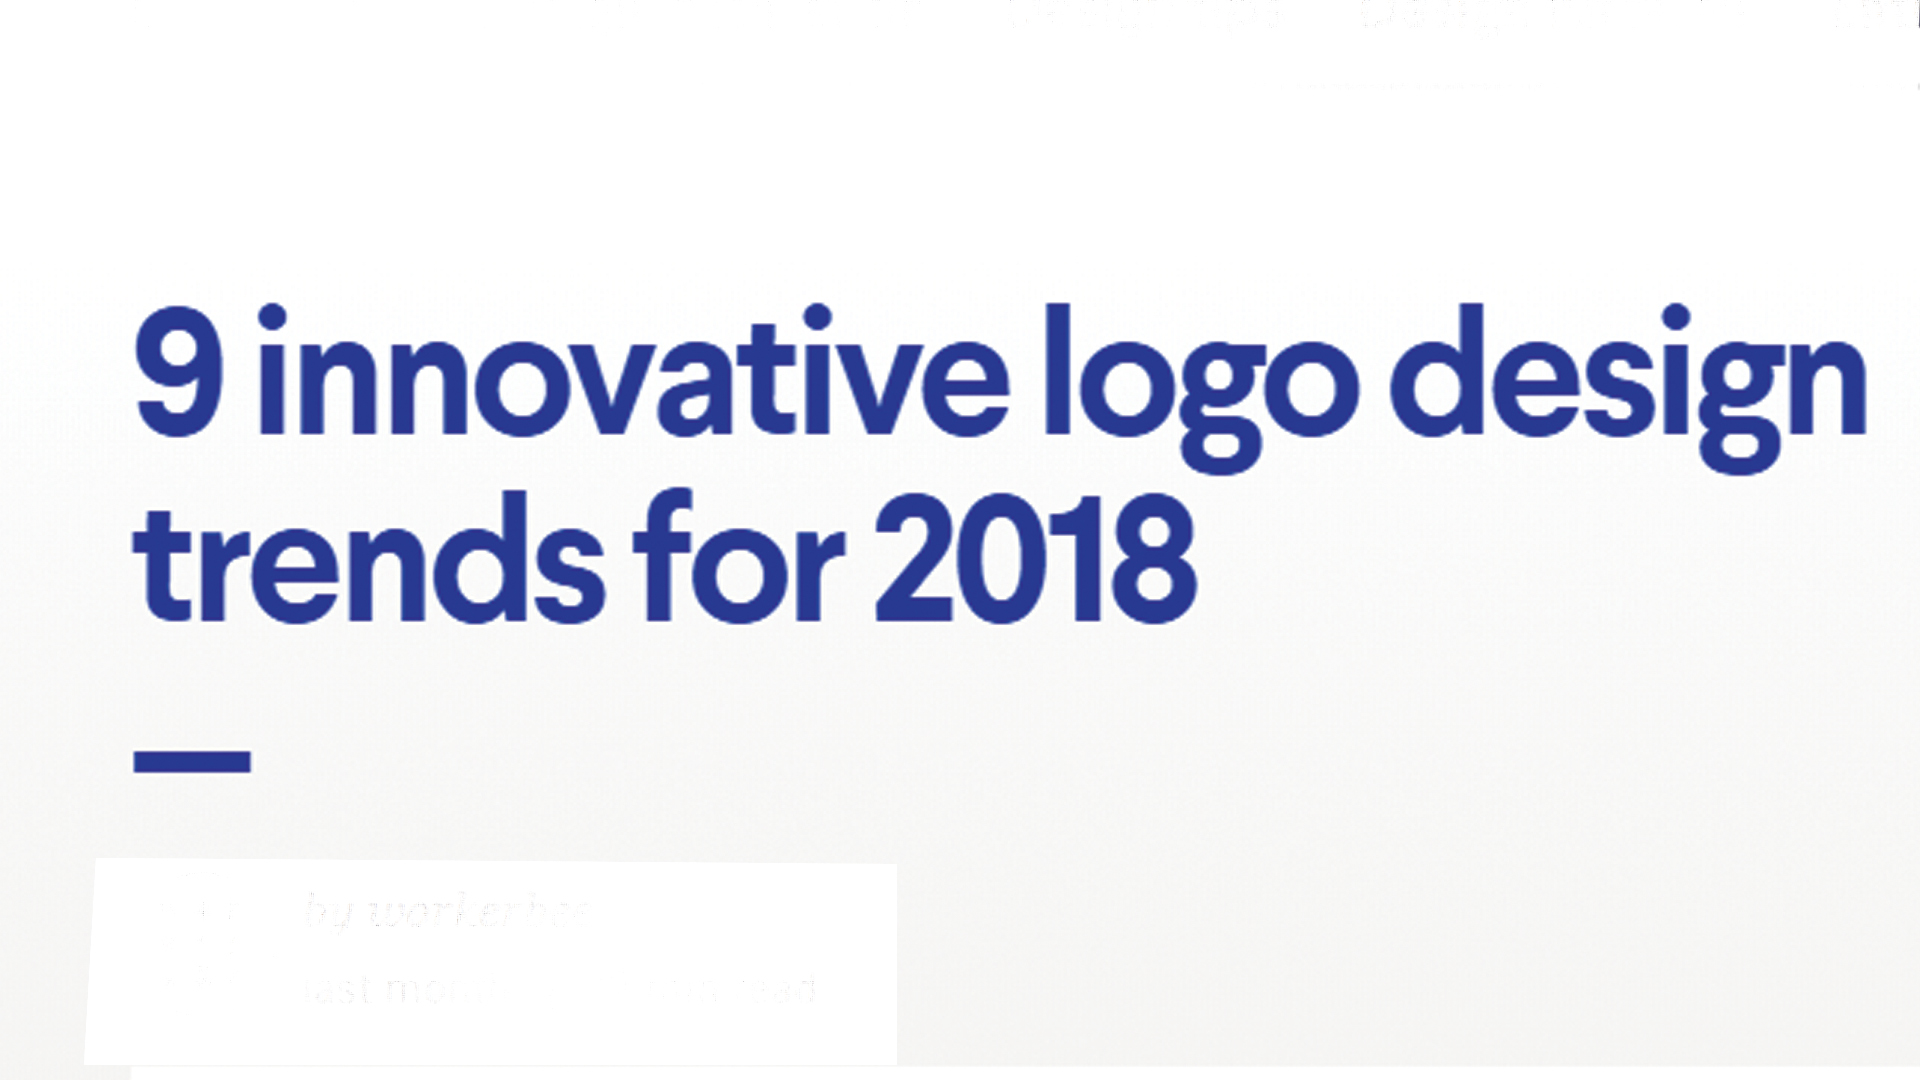 9 Innovative design trends 2018